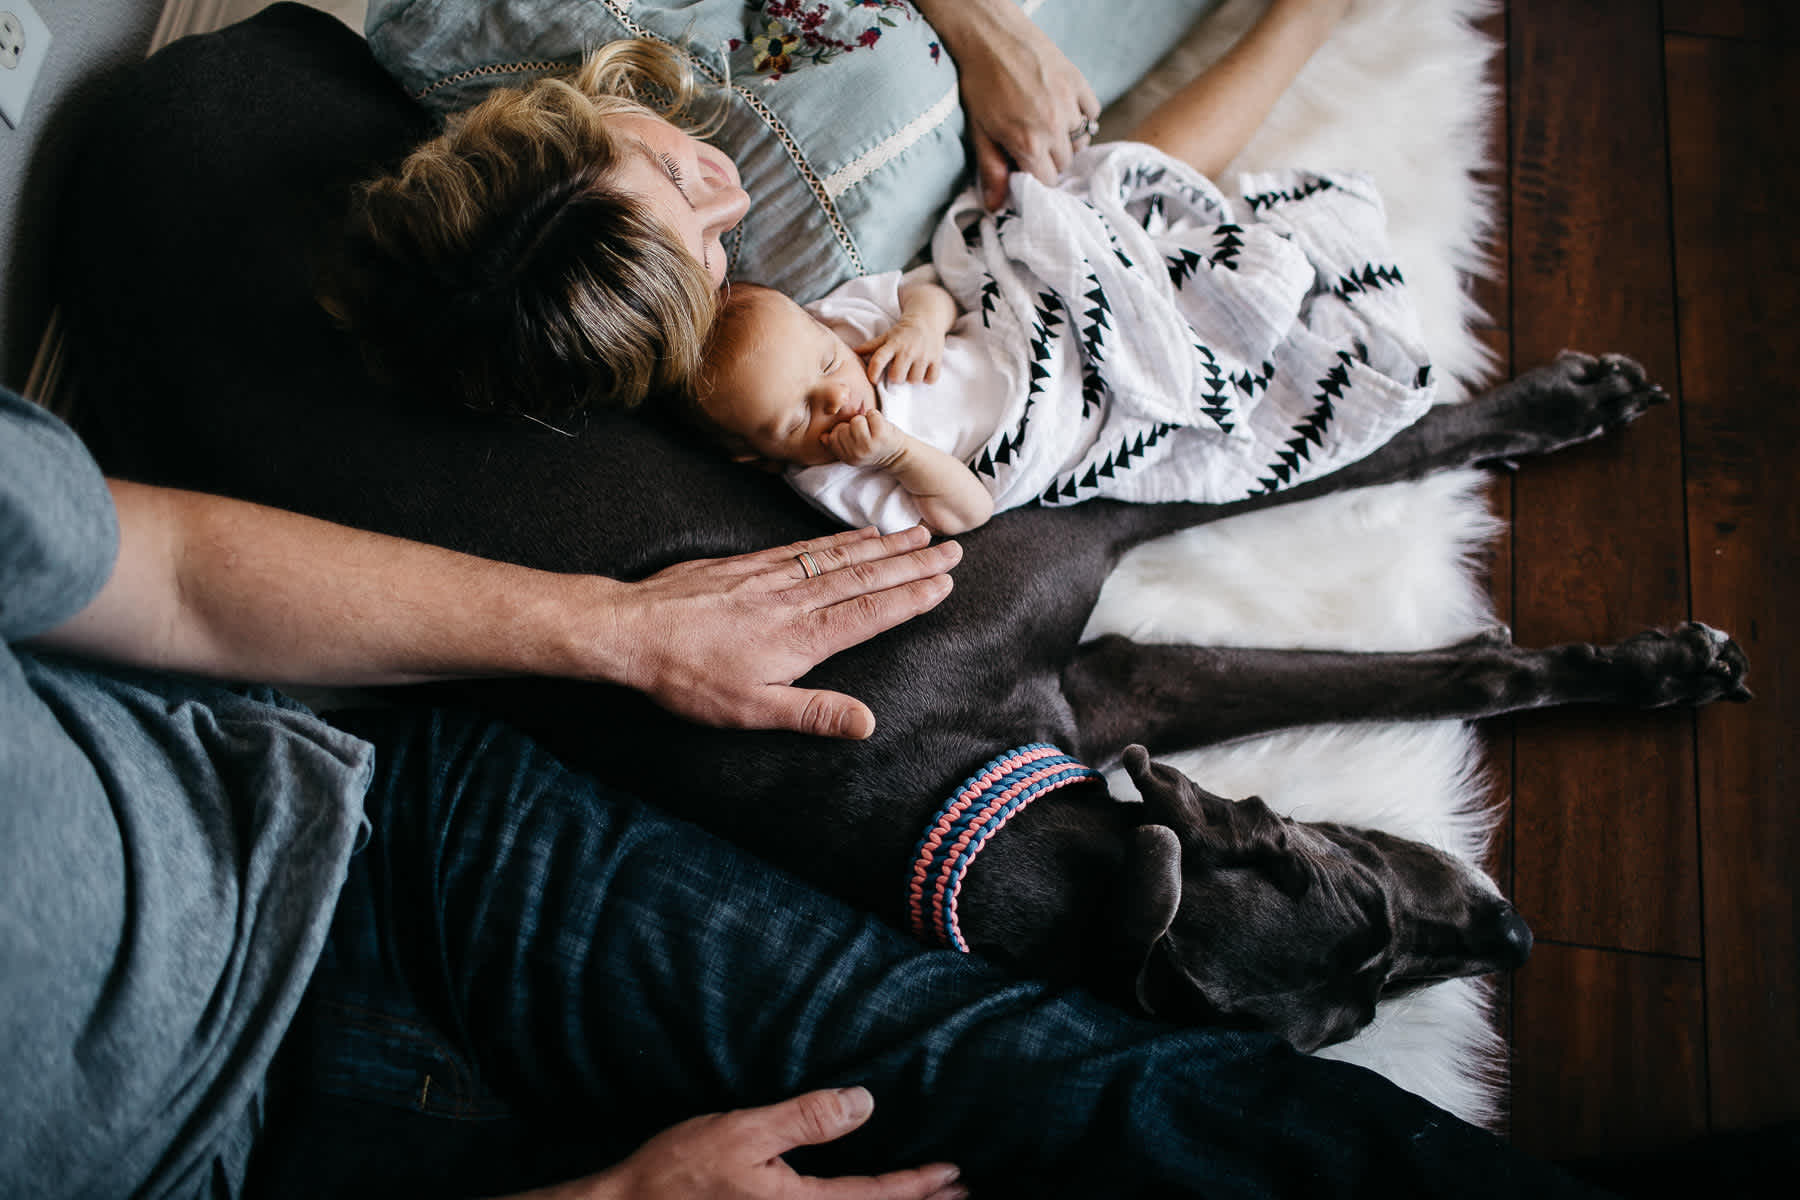 in-home-lifestyle-newborn-with-great-dane-dog-31